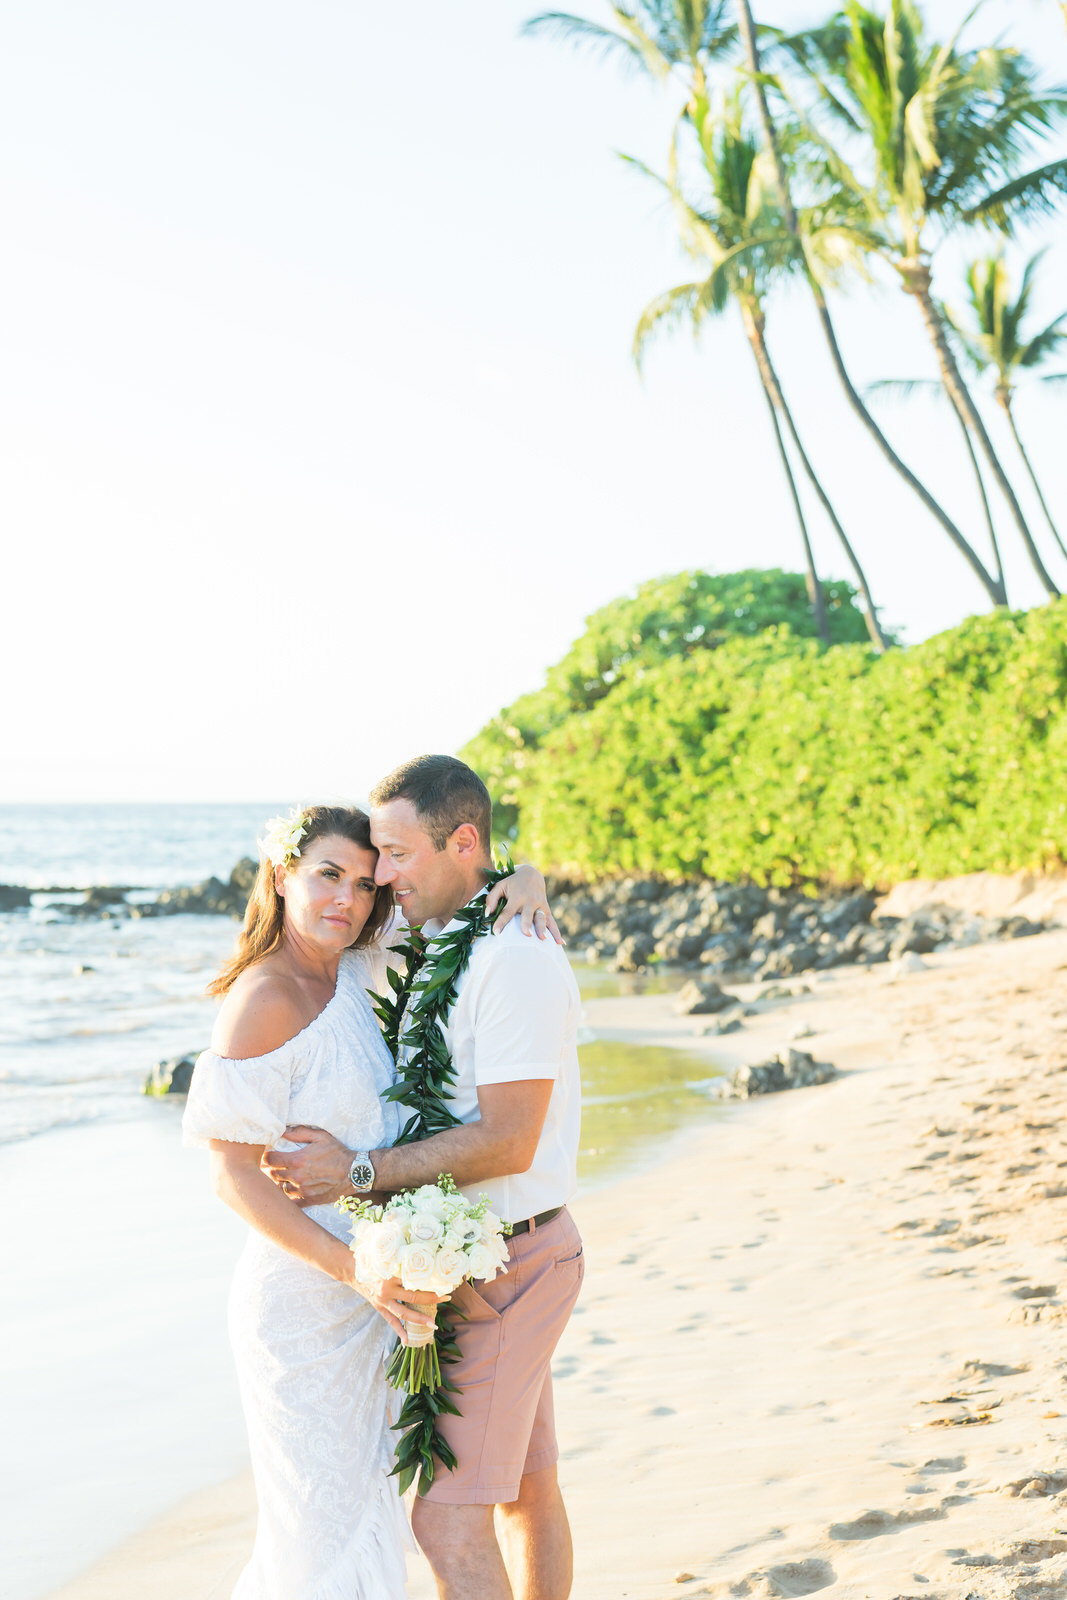 Maui vow renewal on the beach